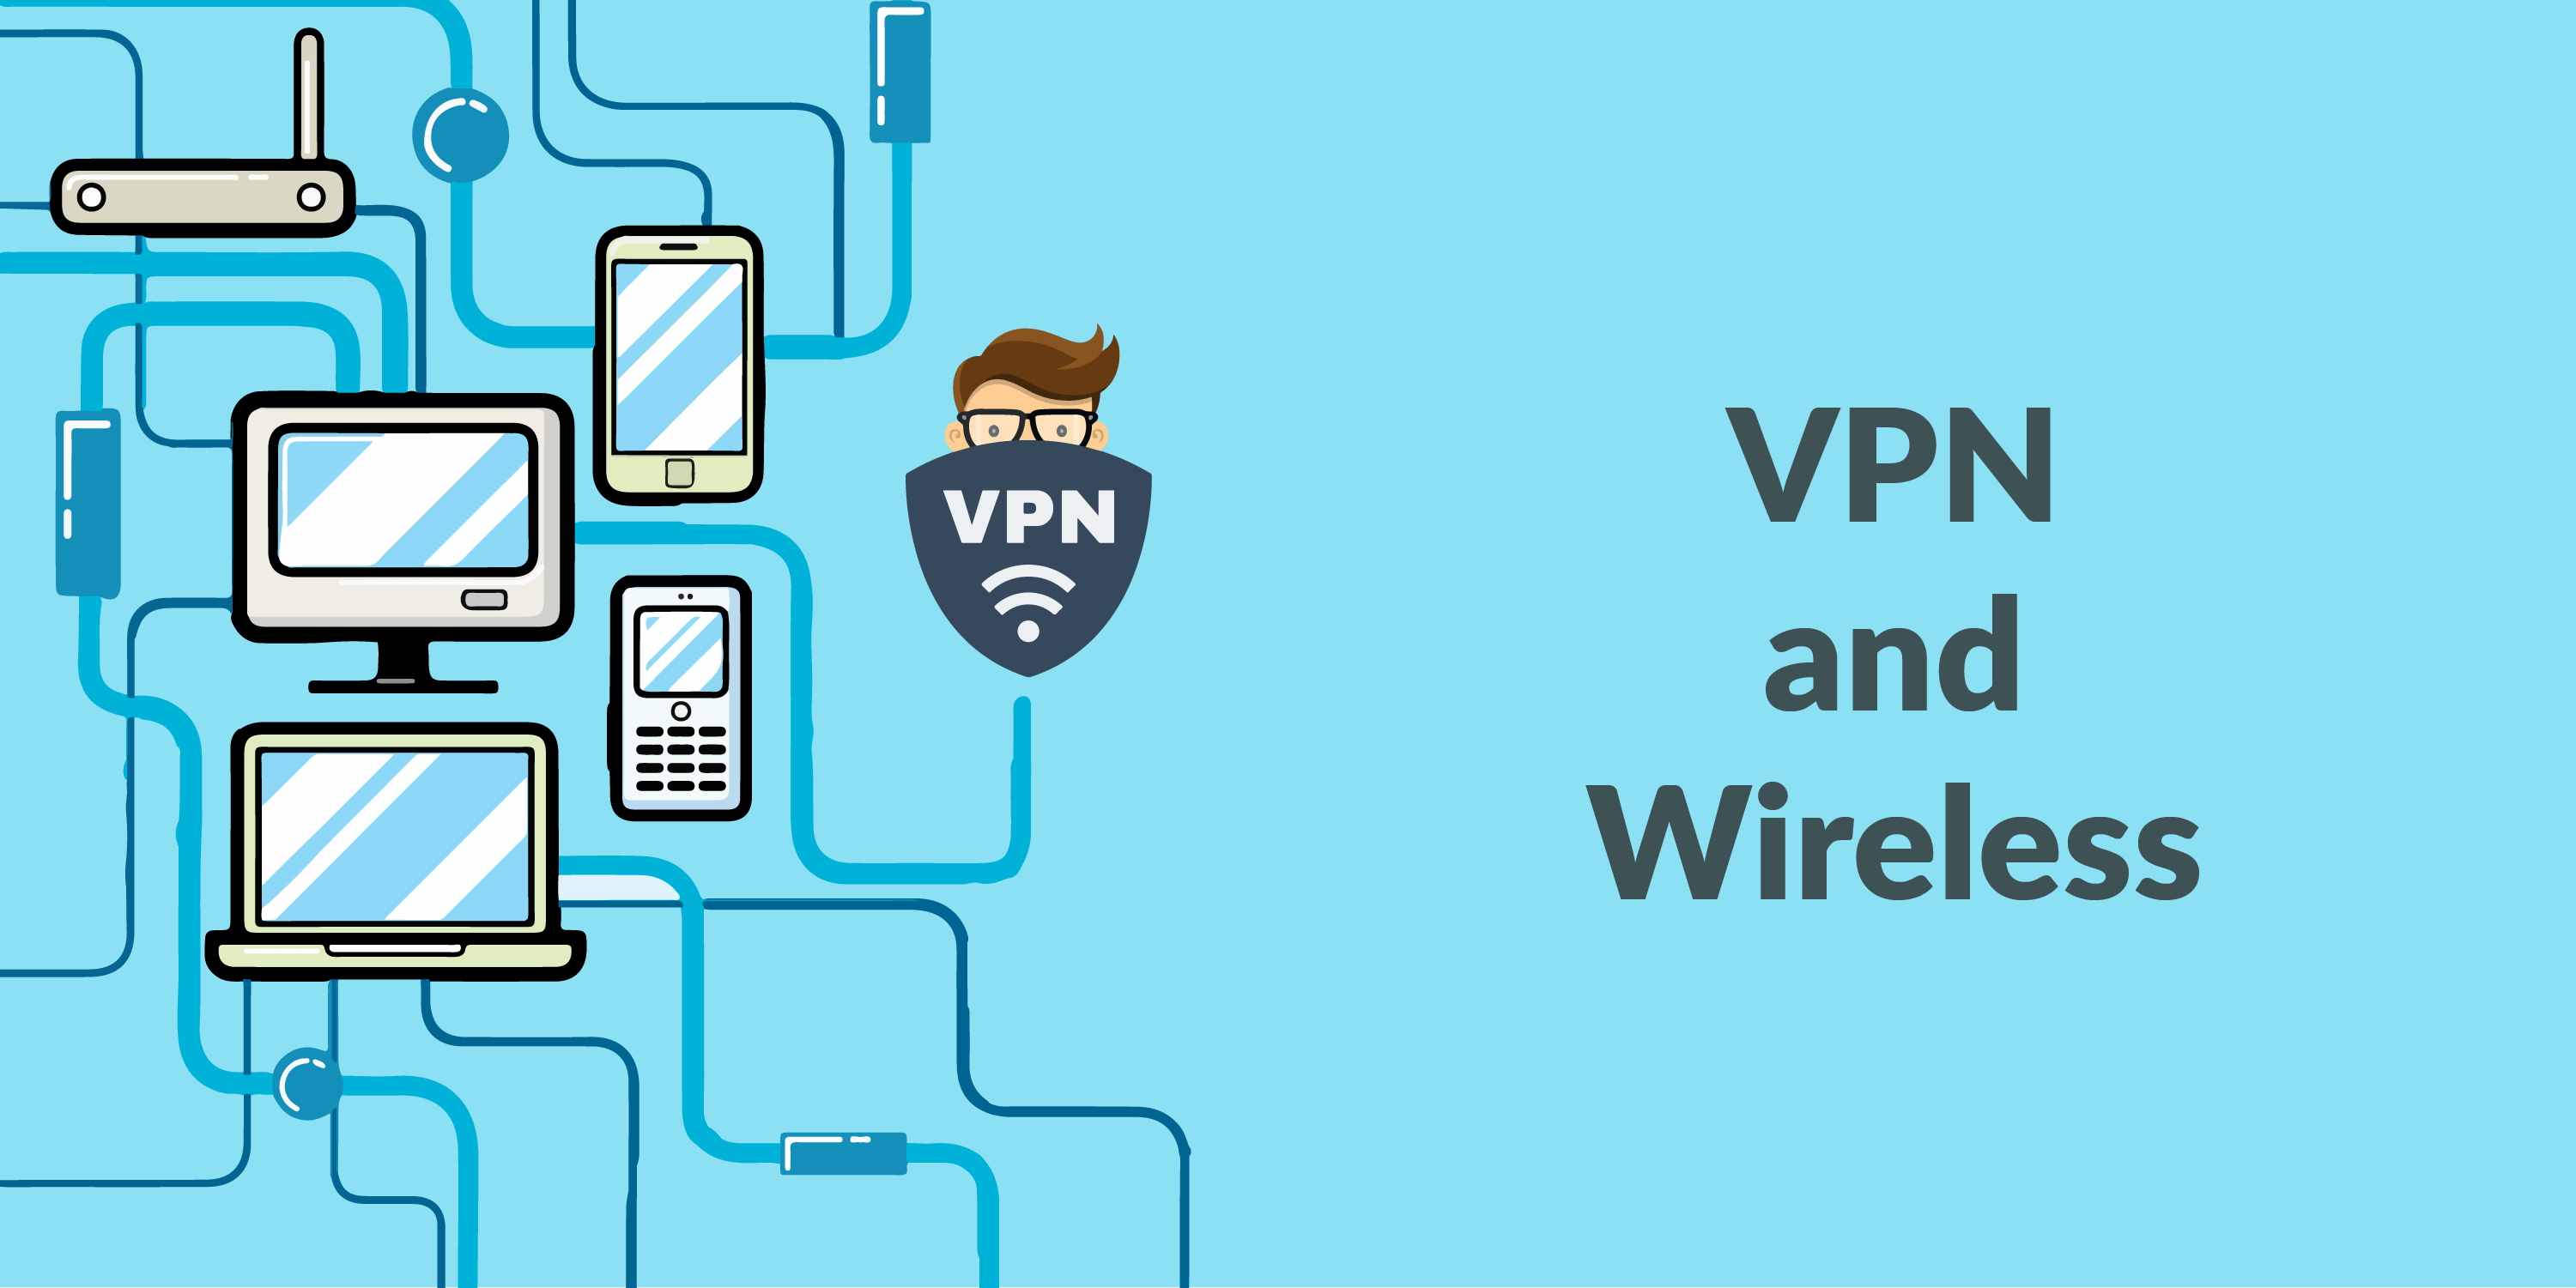 vpn and wireless